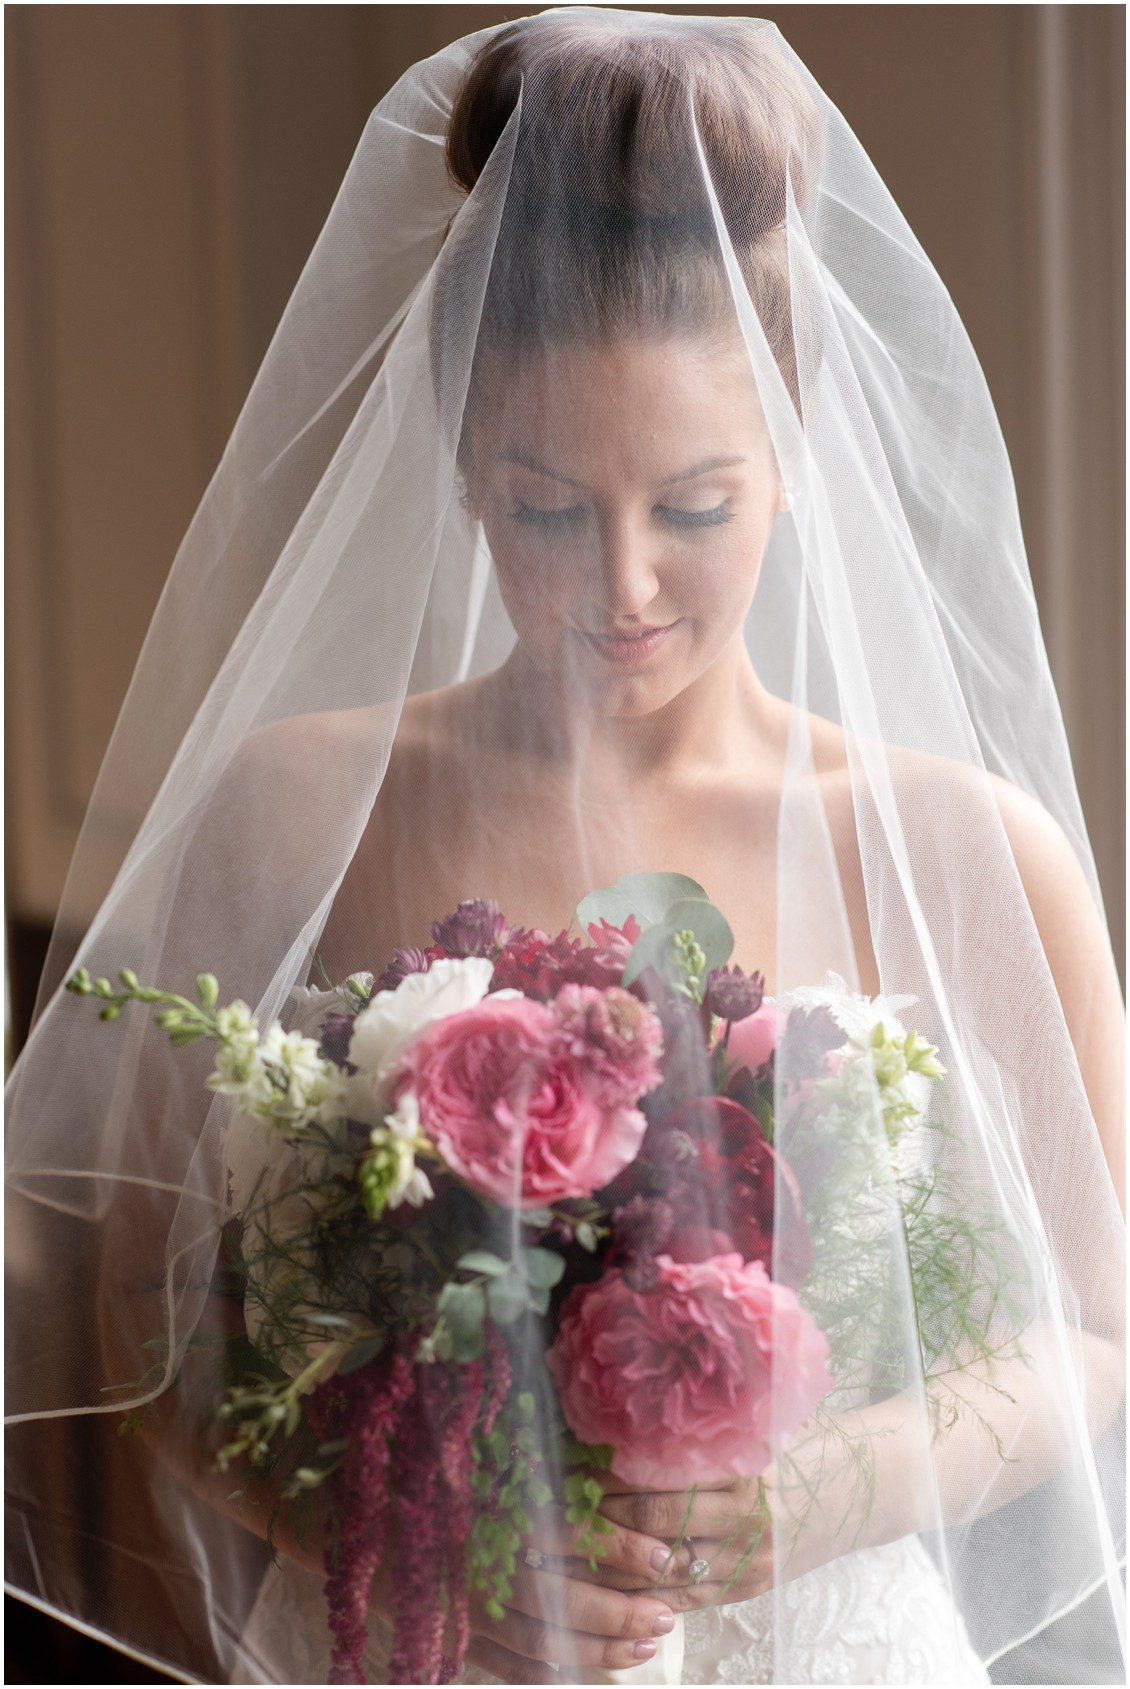 Jacqueline Case hairstyle, Sherwood Florist bouquet, and wedding vale over bride. | My Eastern Shore Wedding |